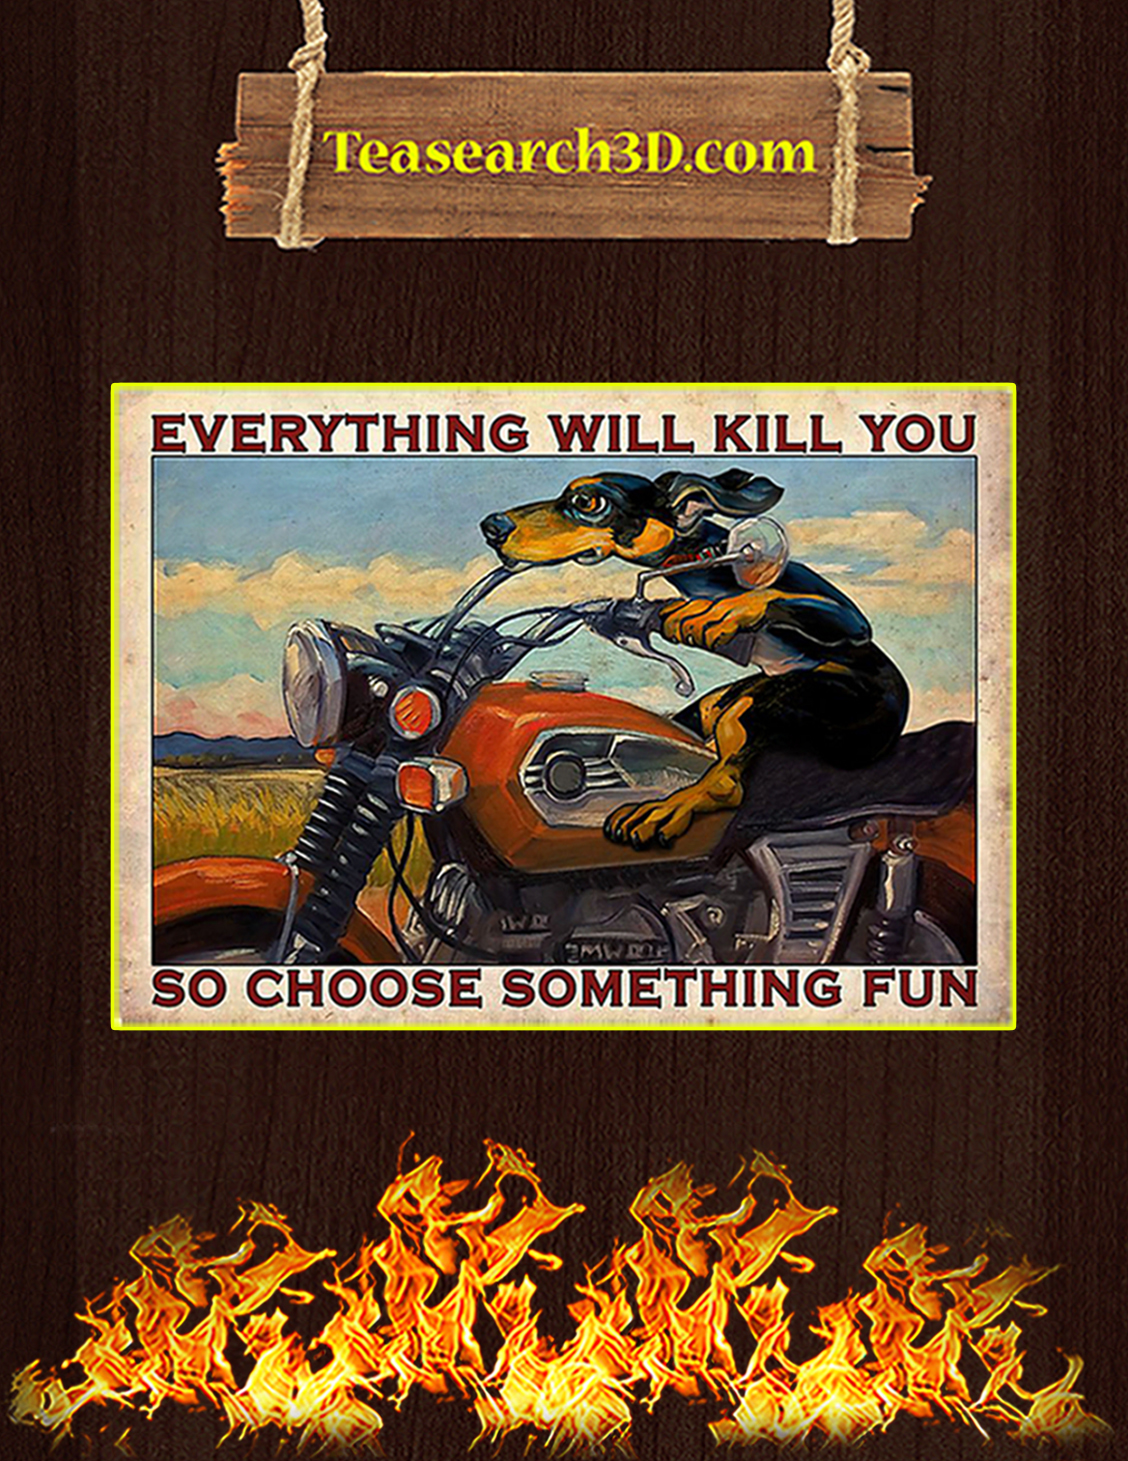 Dachshund motorcycle everything will kill you so choose something fun poster A3